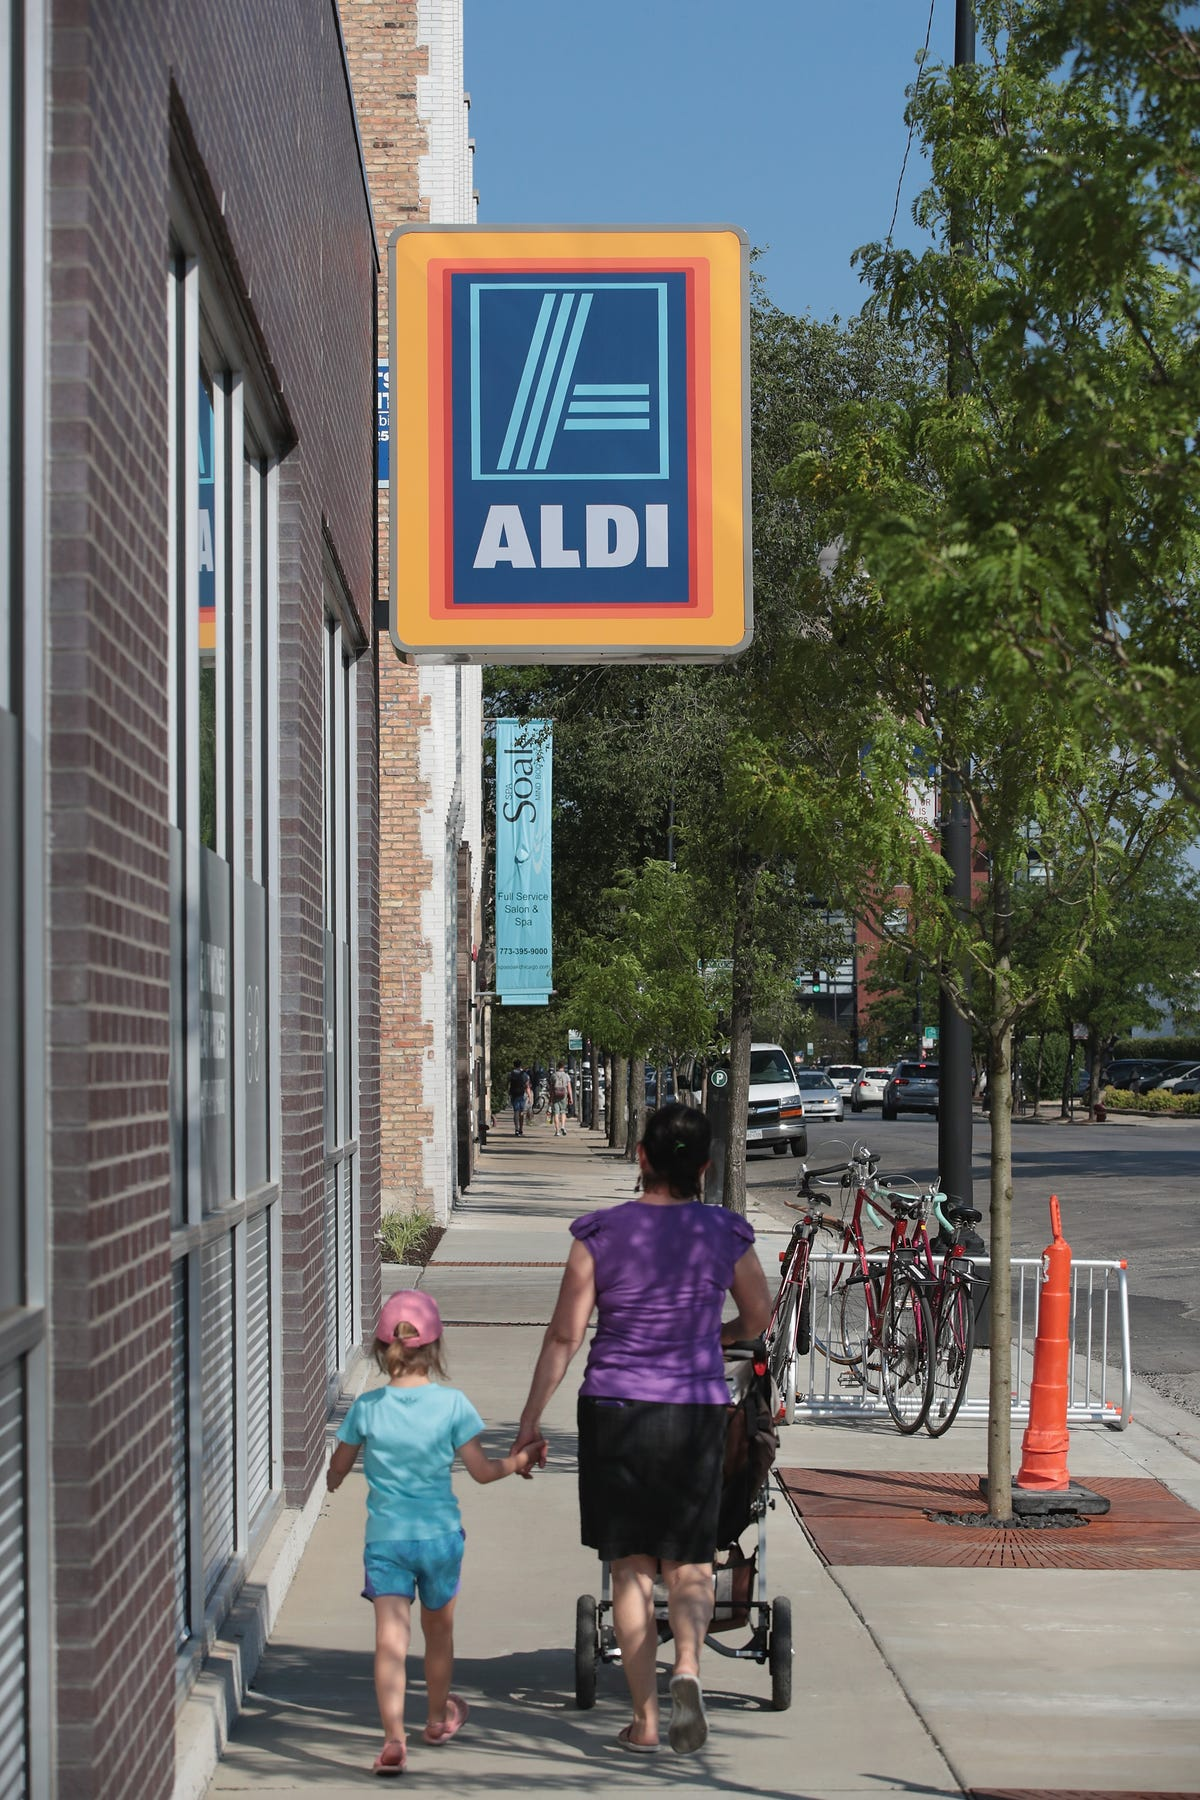 Aldi to deliver groceries via Instacart